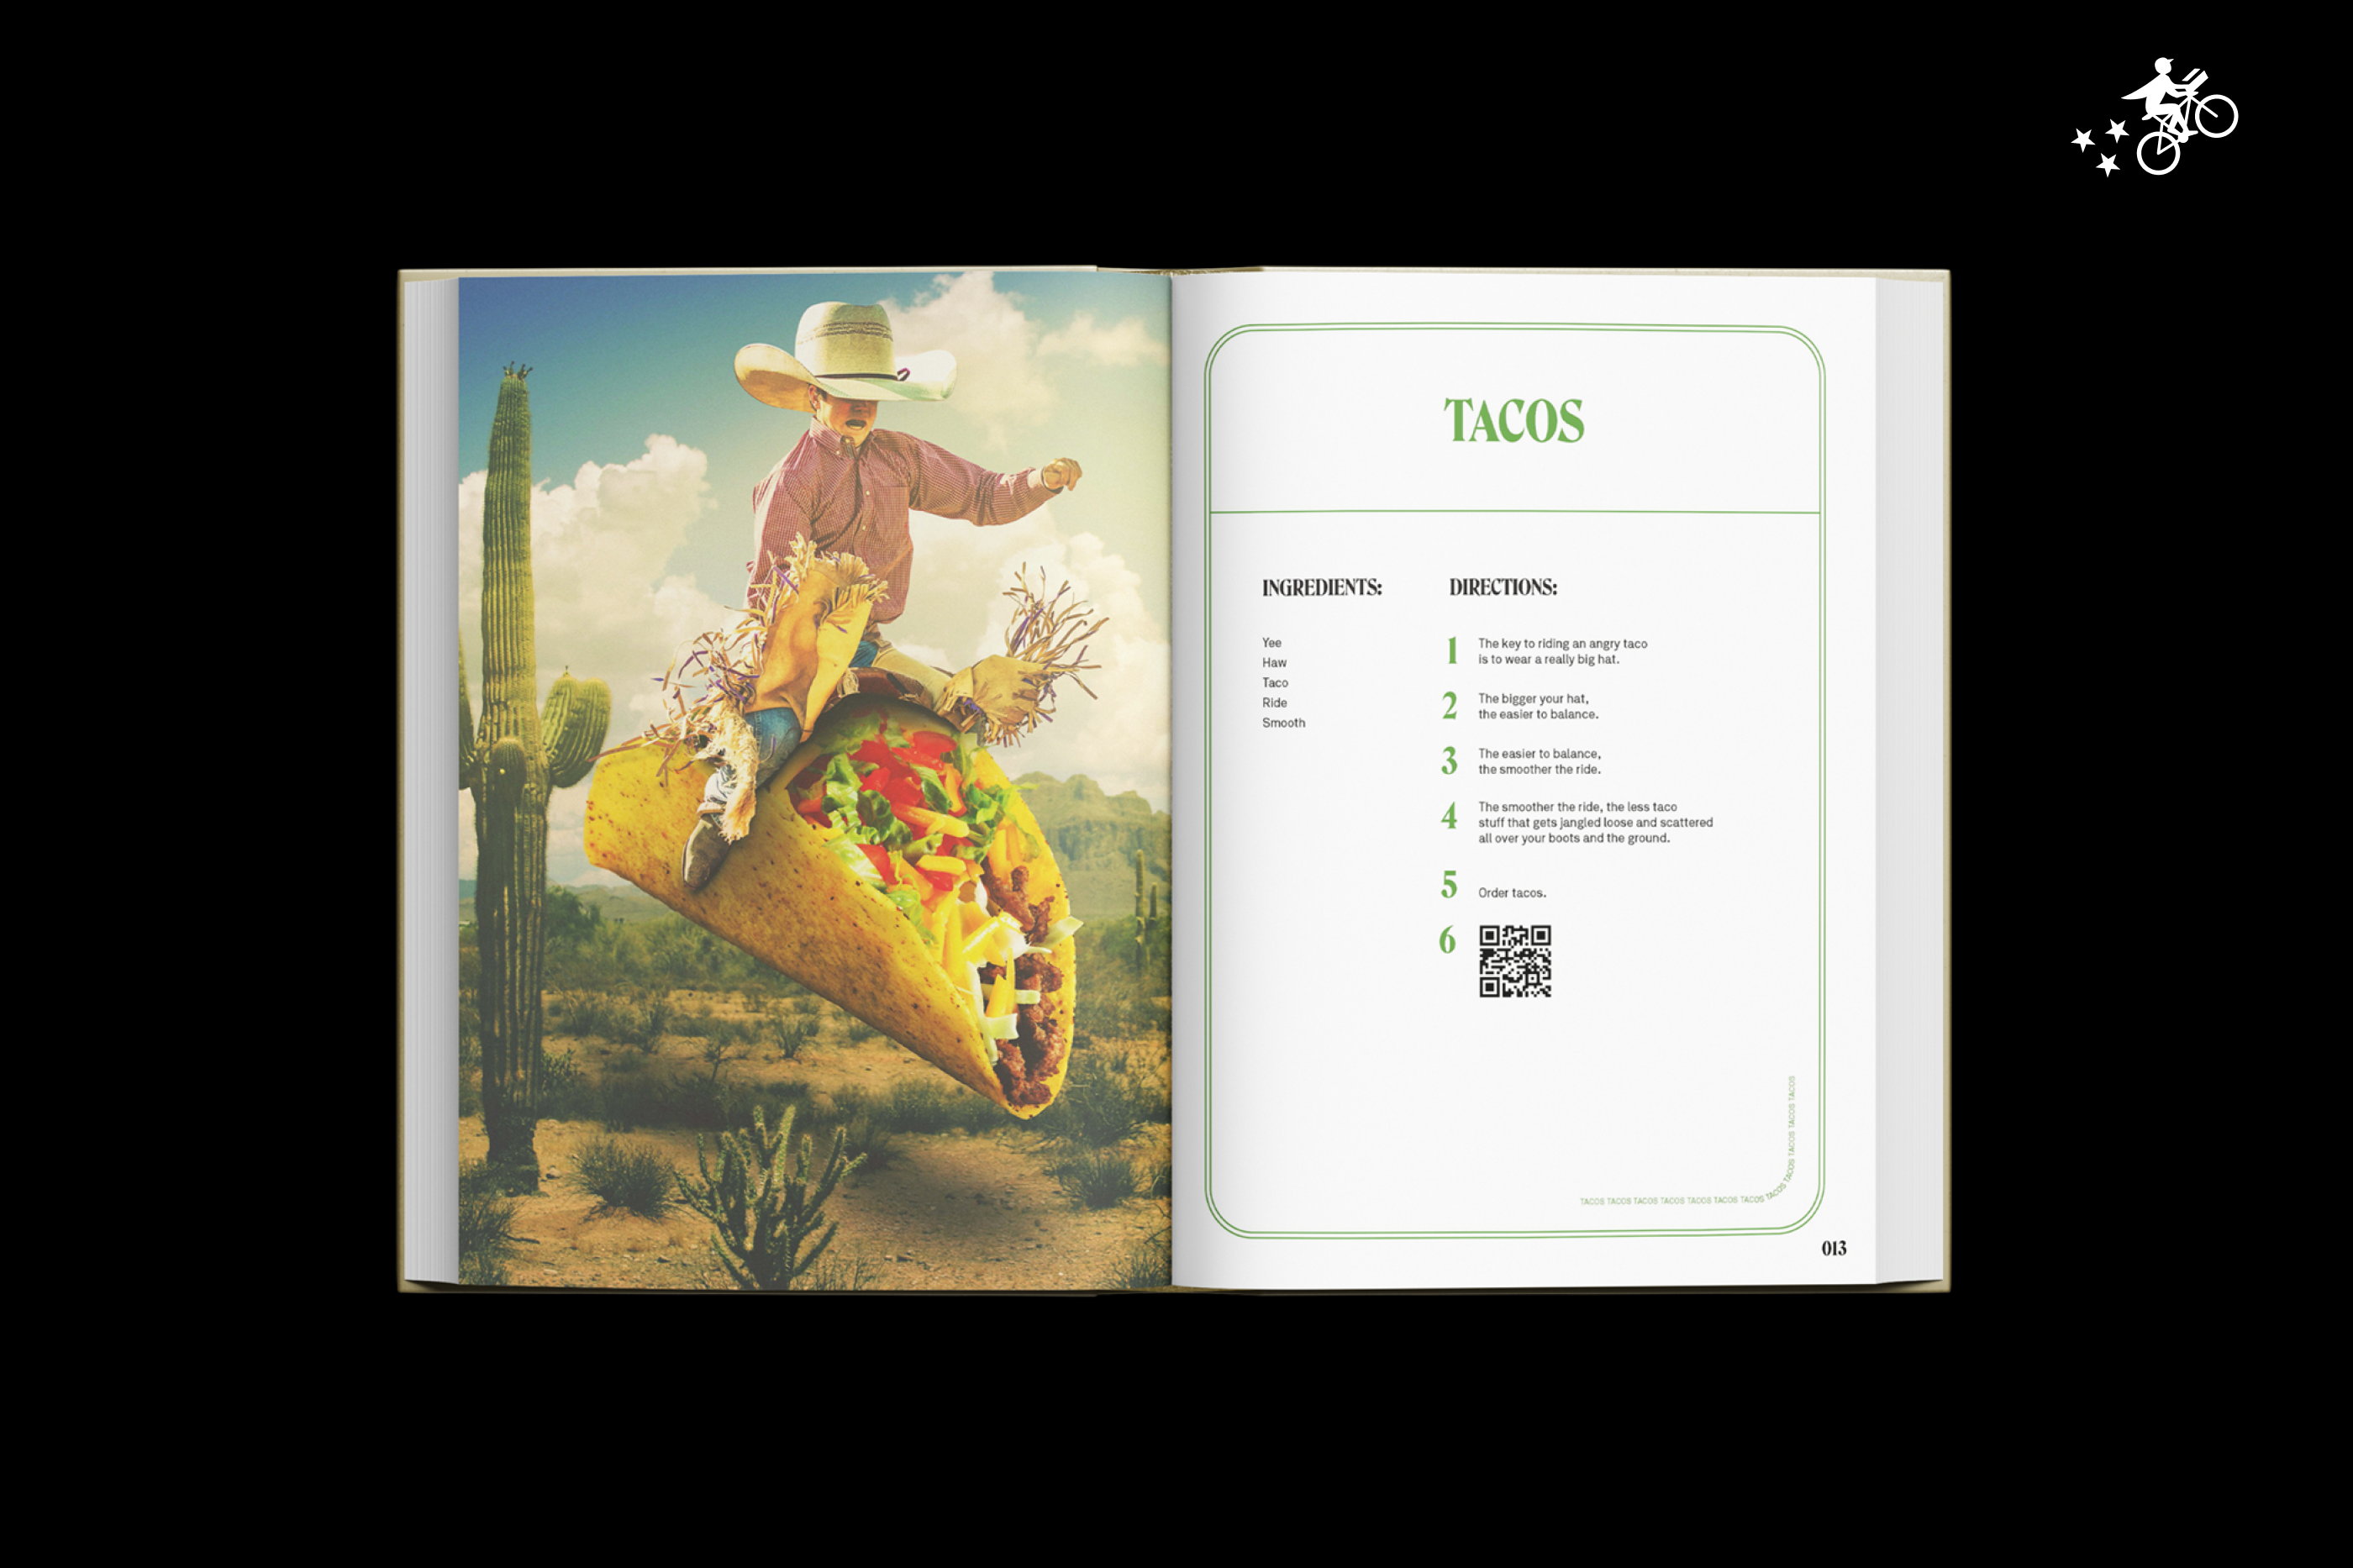 Postmates made a cookbook that doesn't require you to cook